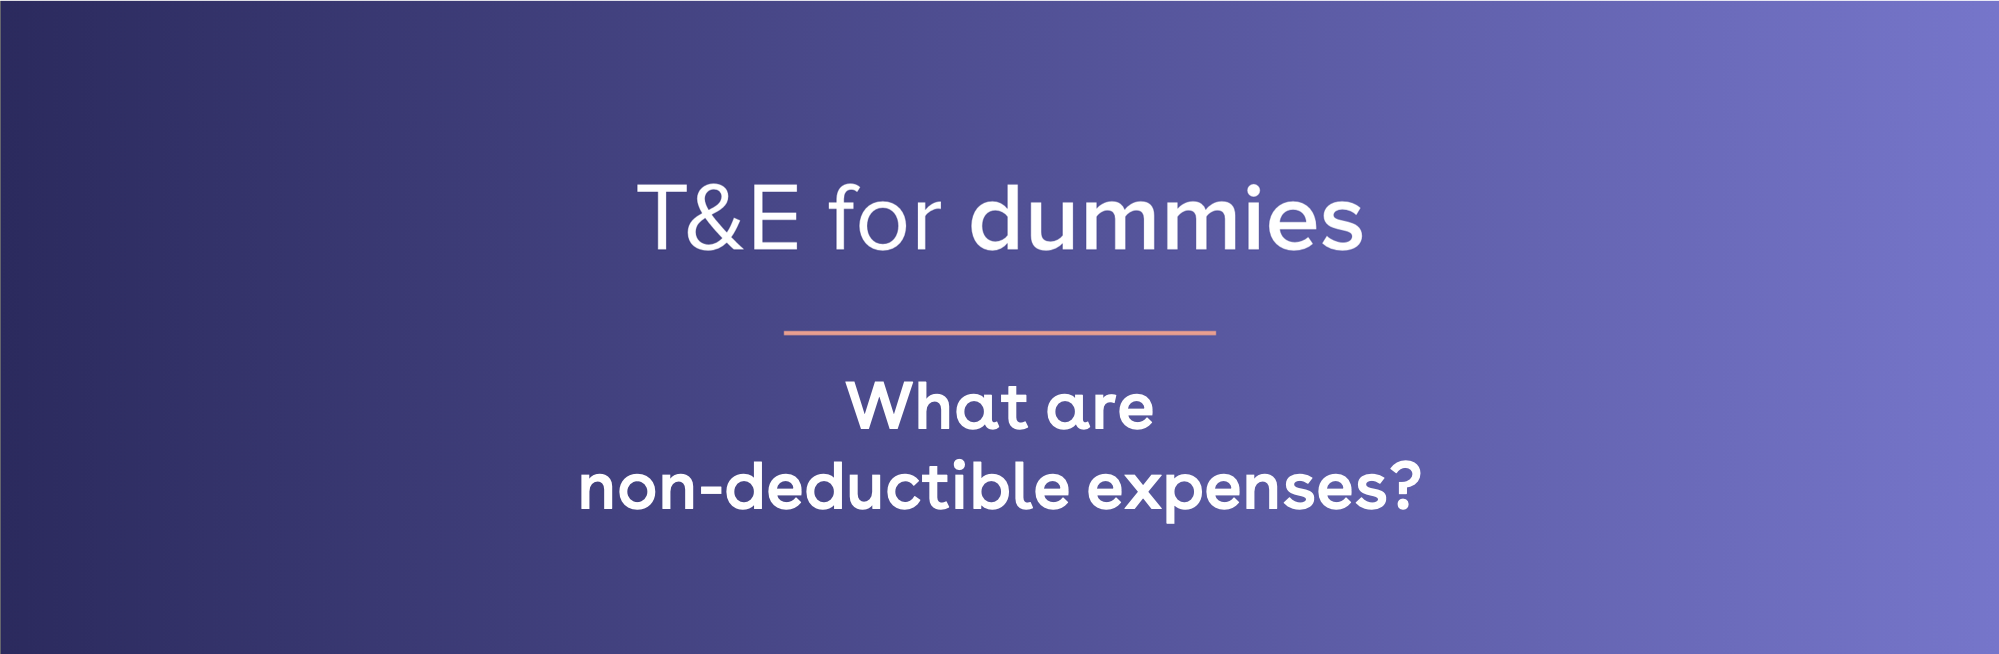 what are non-deductible expenses